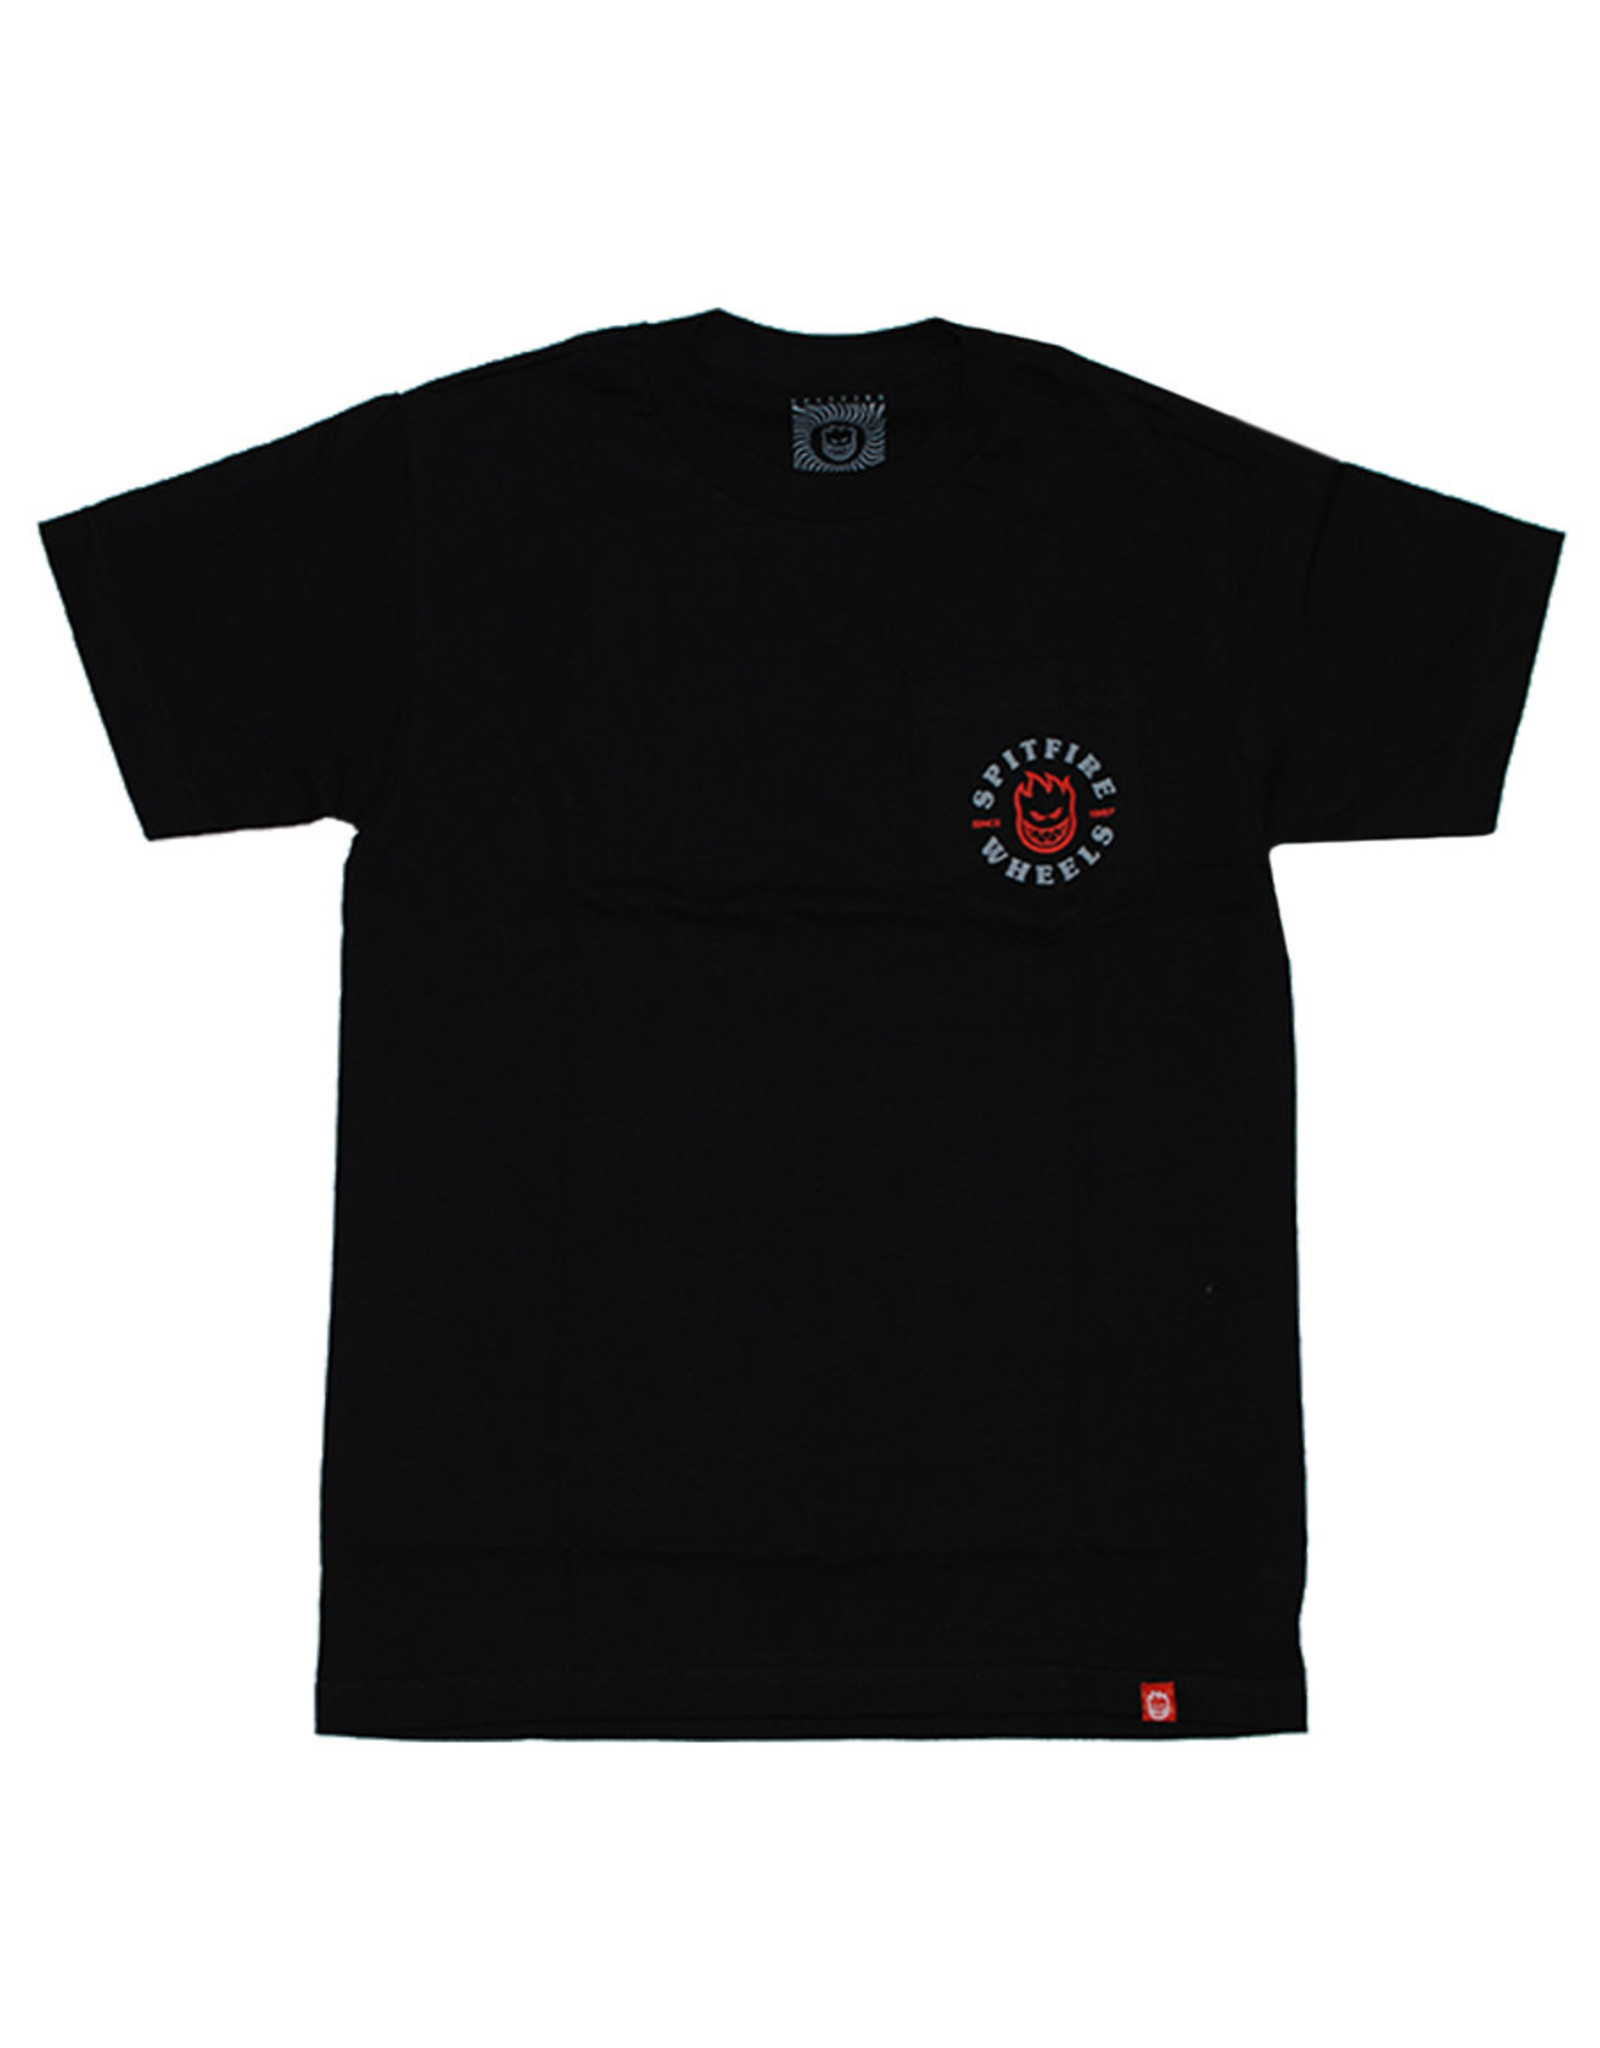 Spitfire Spitfire Tee Bighead Classic Pocket S/S (Black/Red)